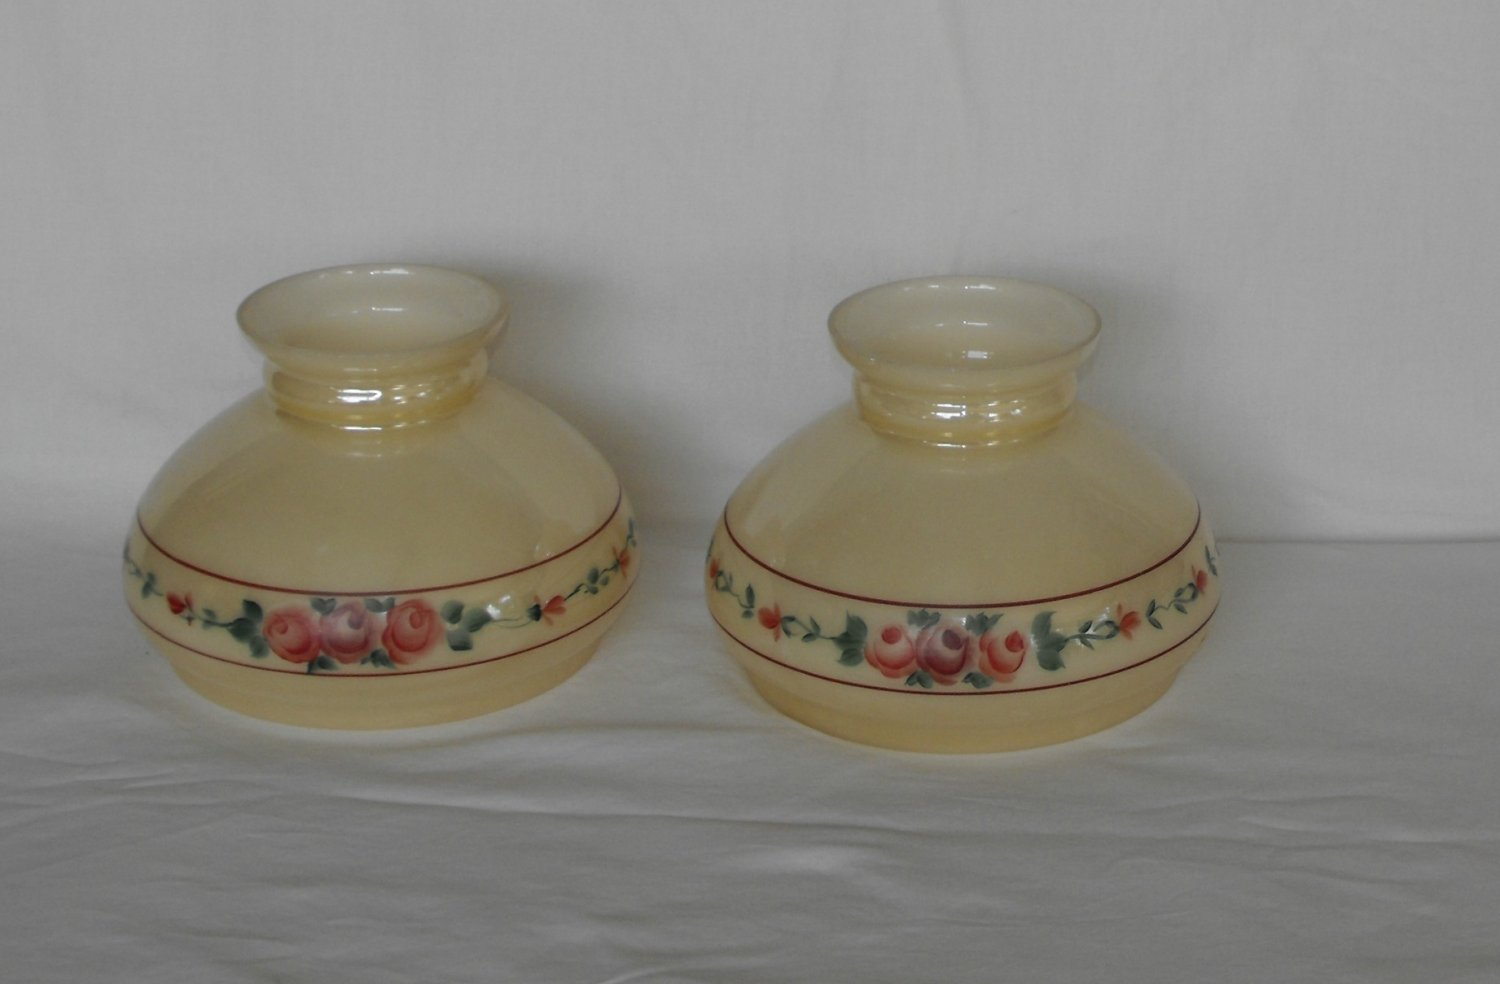 Vintage Antique Glass Student Shades Hand-Painted Gold Luster Hurricane Kerosene Lampshades